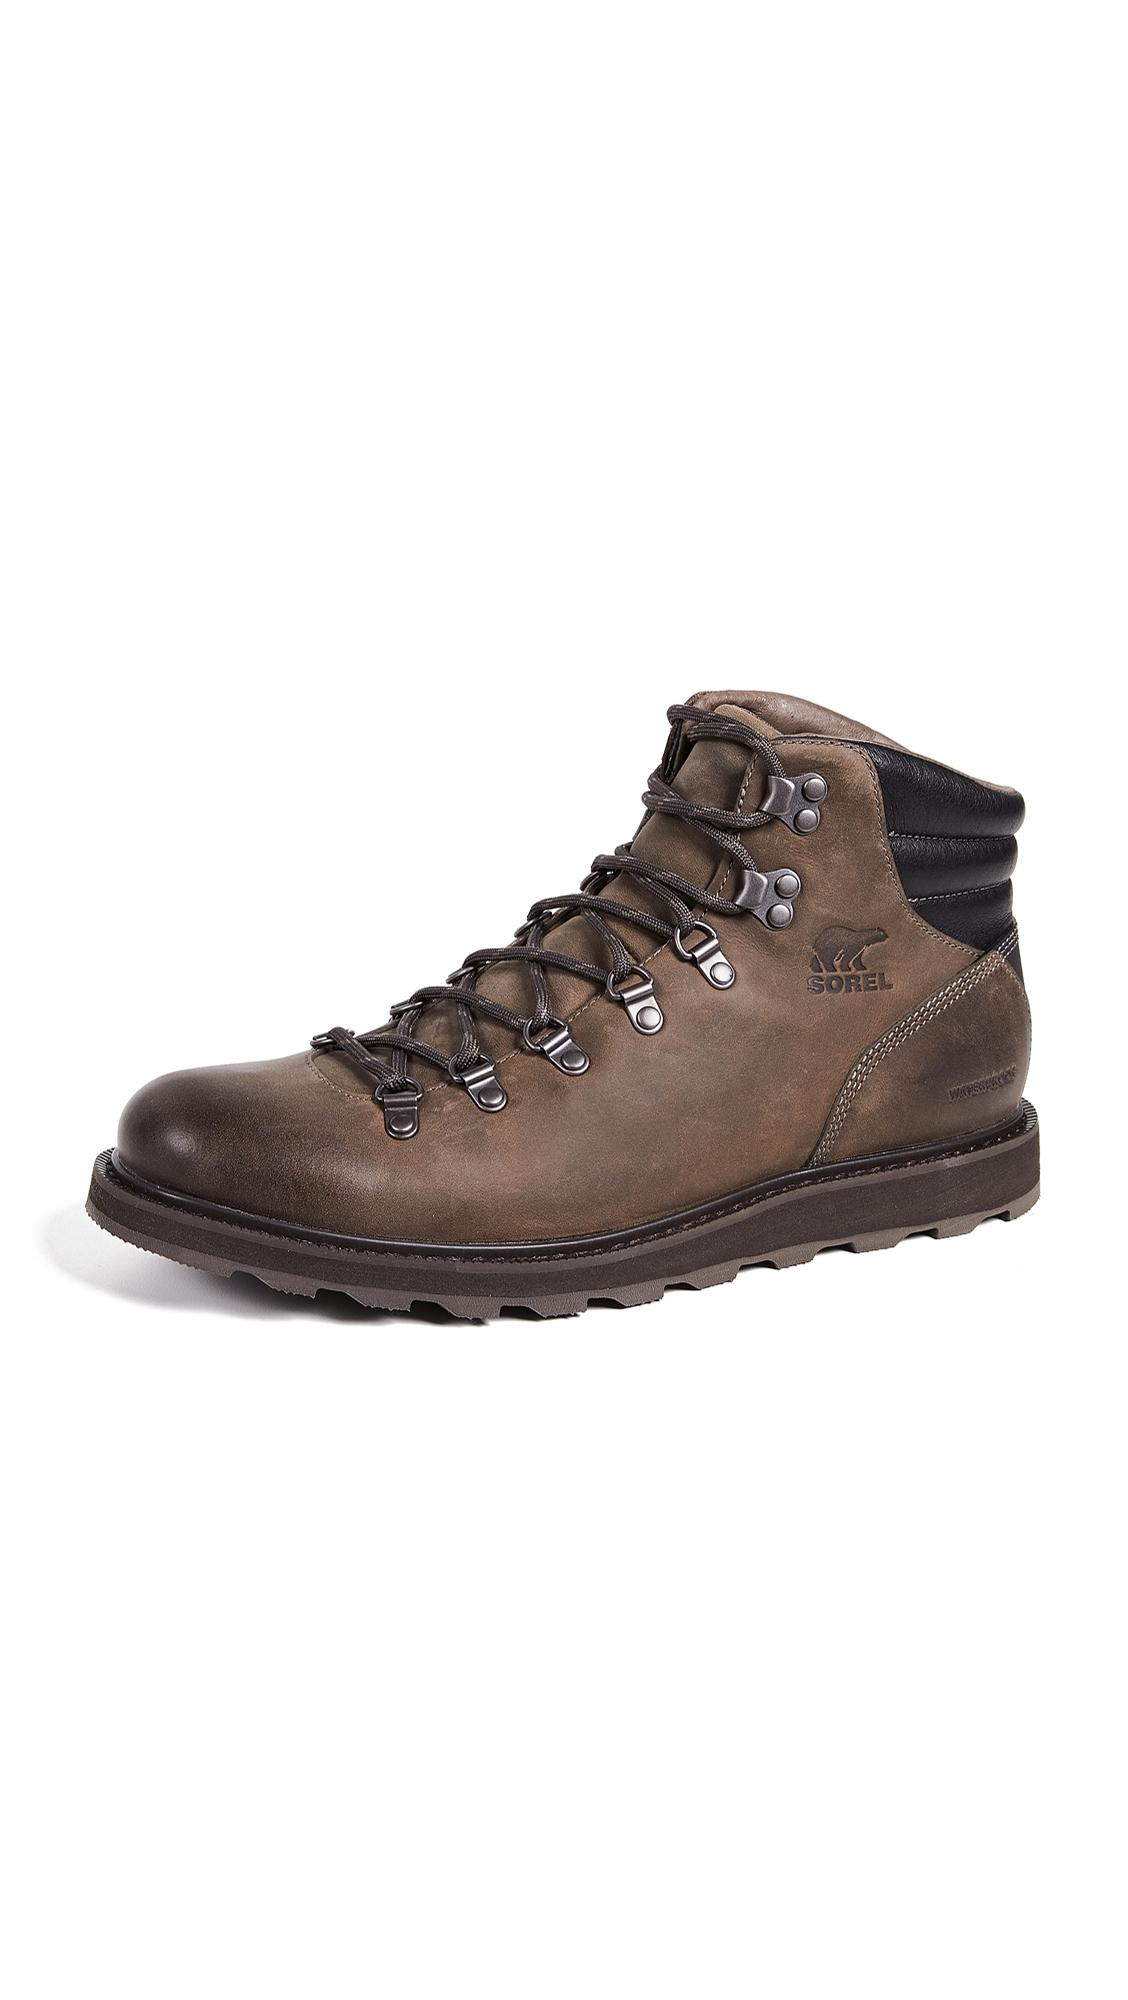 2157eac90bf MADSON WATERPROOF HIKER BOOTS